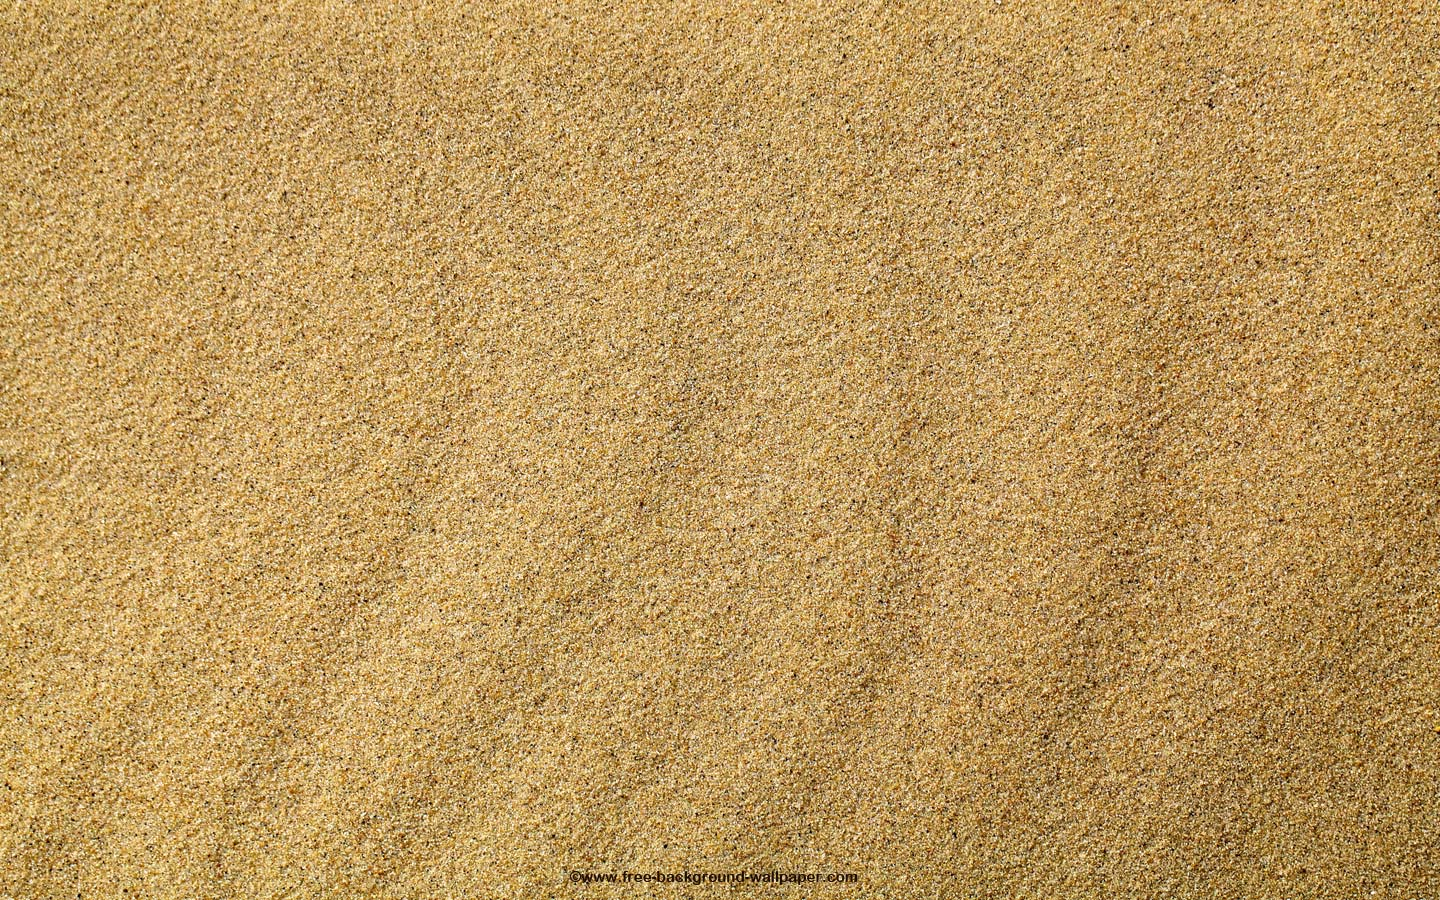 Sand Pictures,  Best HD Pictures of Sand, HD Quality Sand Wallpapers 1440x900